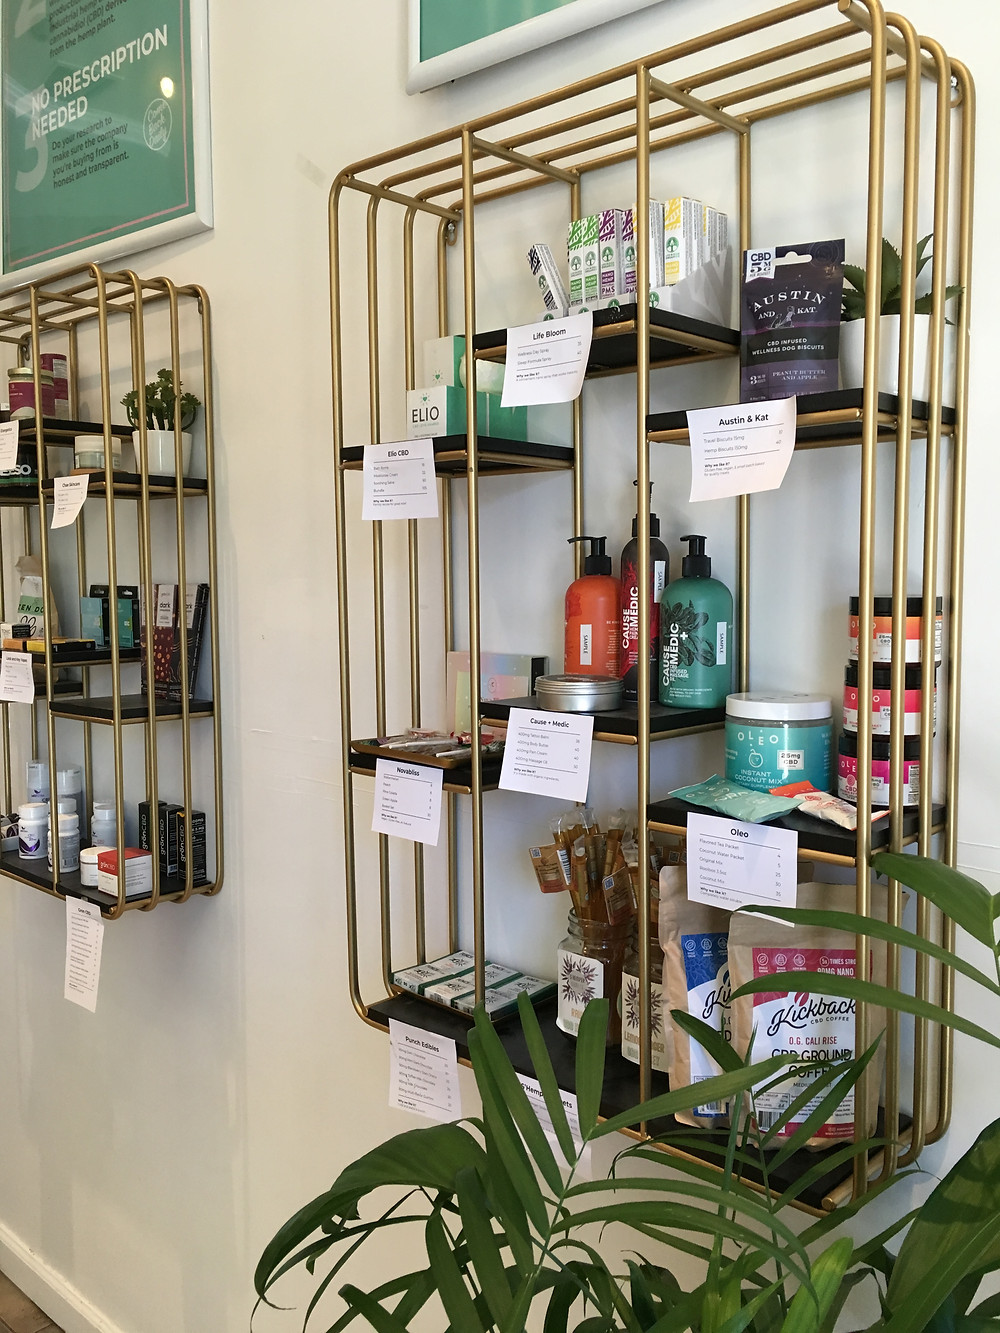 Come Back Daily, Harlem's new CBD store, sells tinctures, salves, topicals, vapes, and edibles (for humans and dogs)